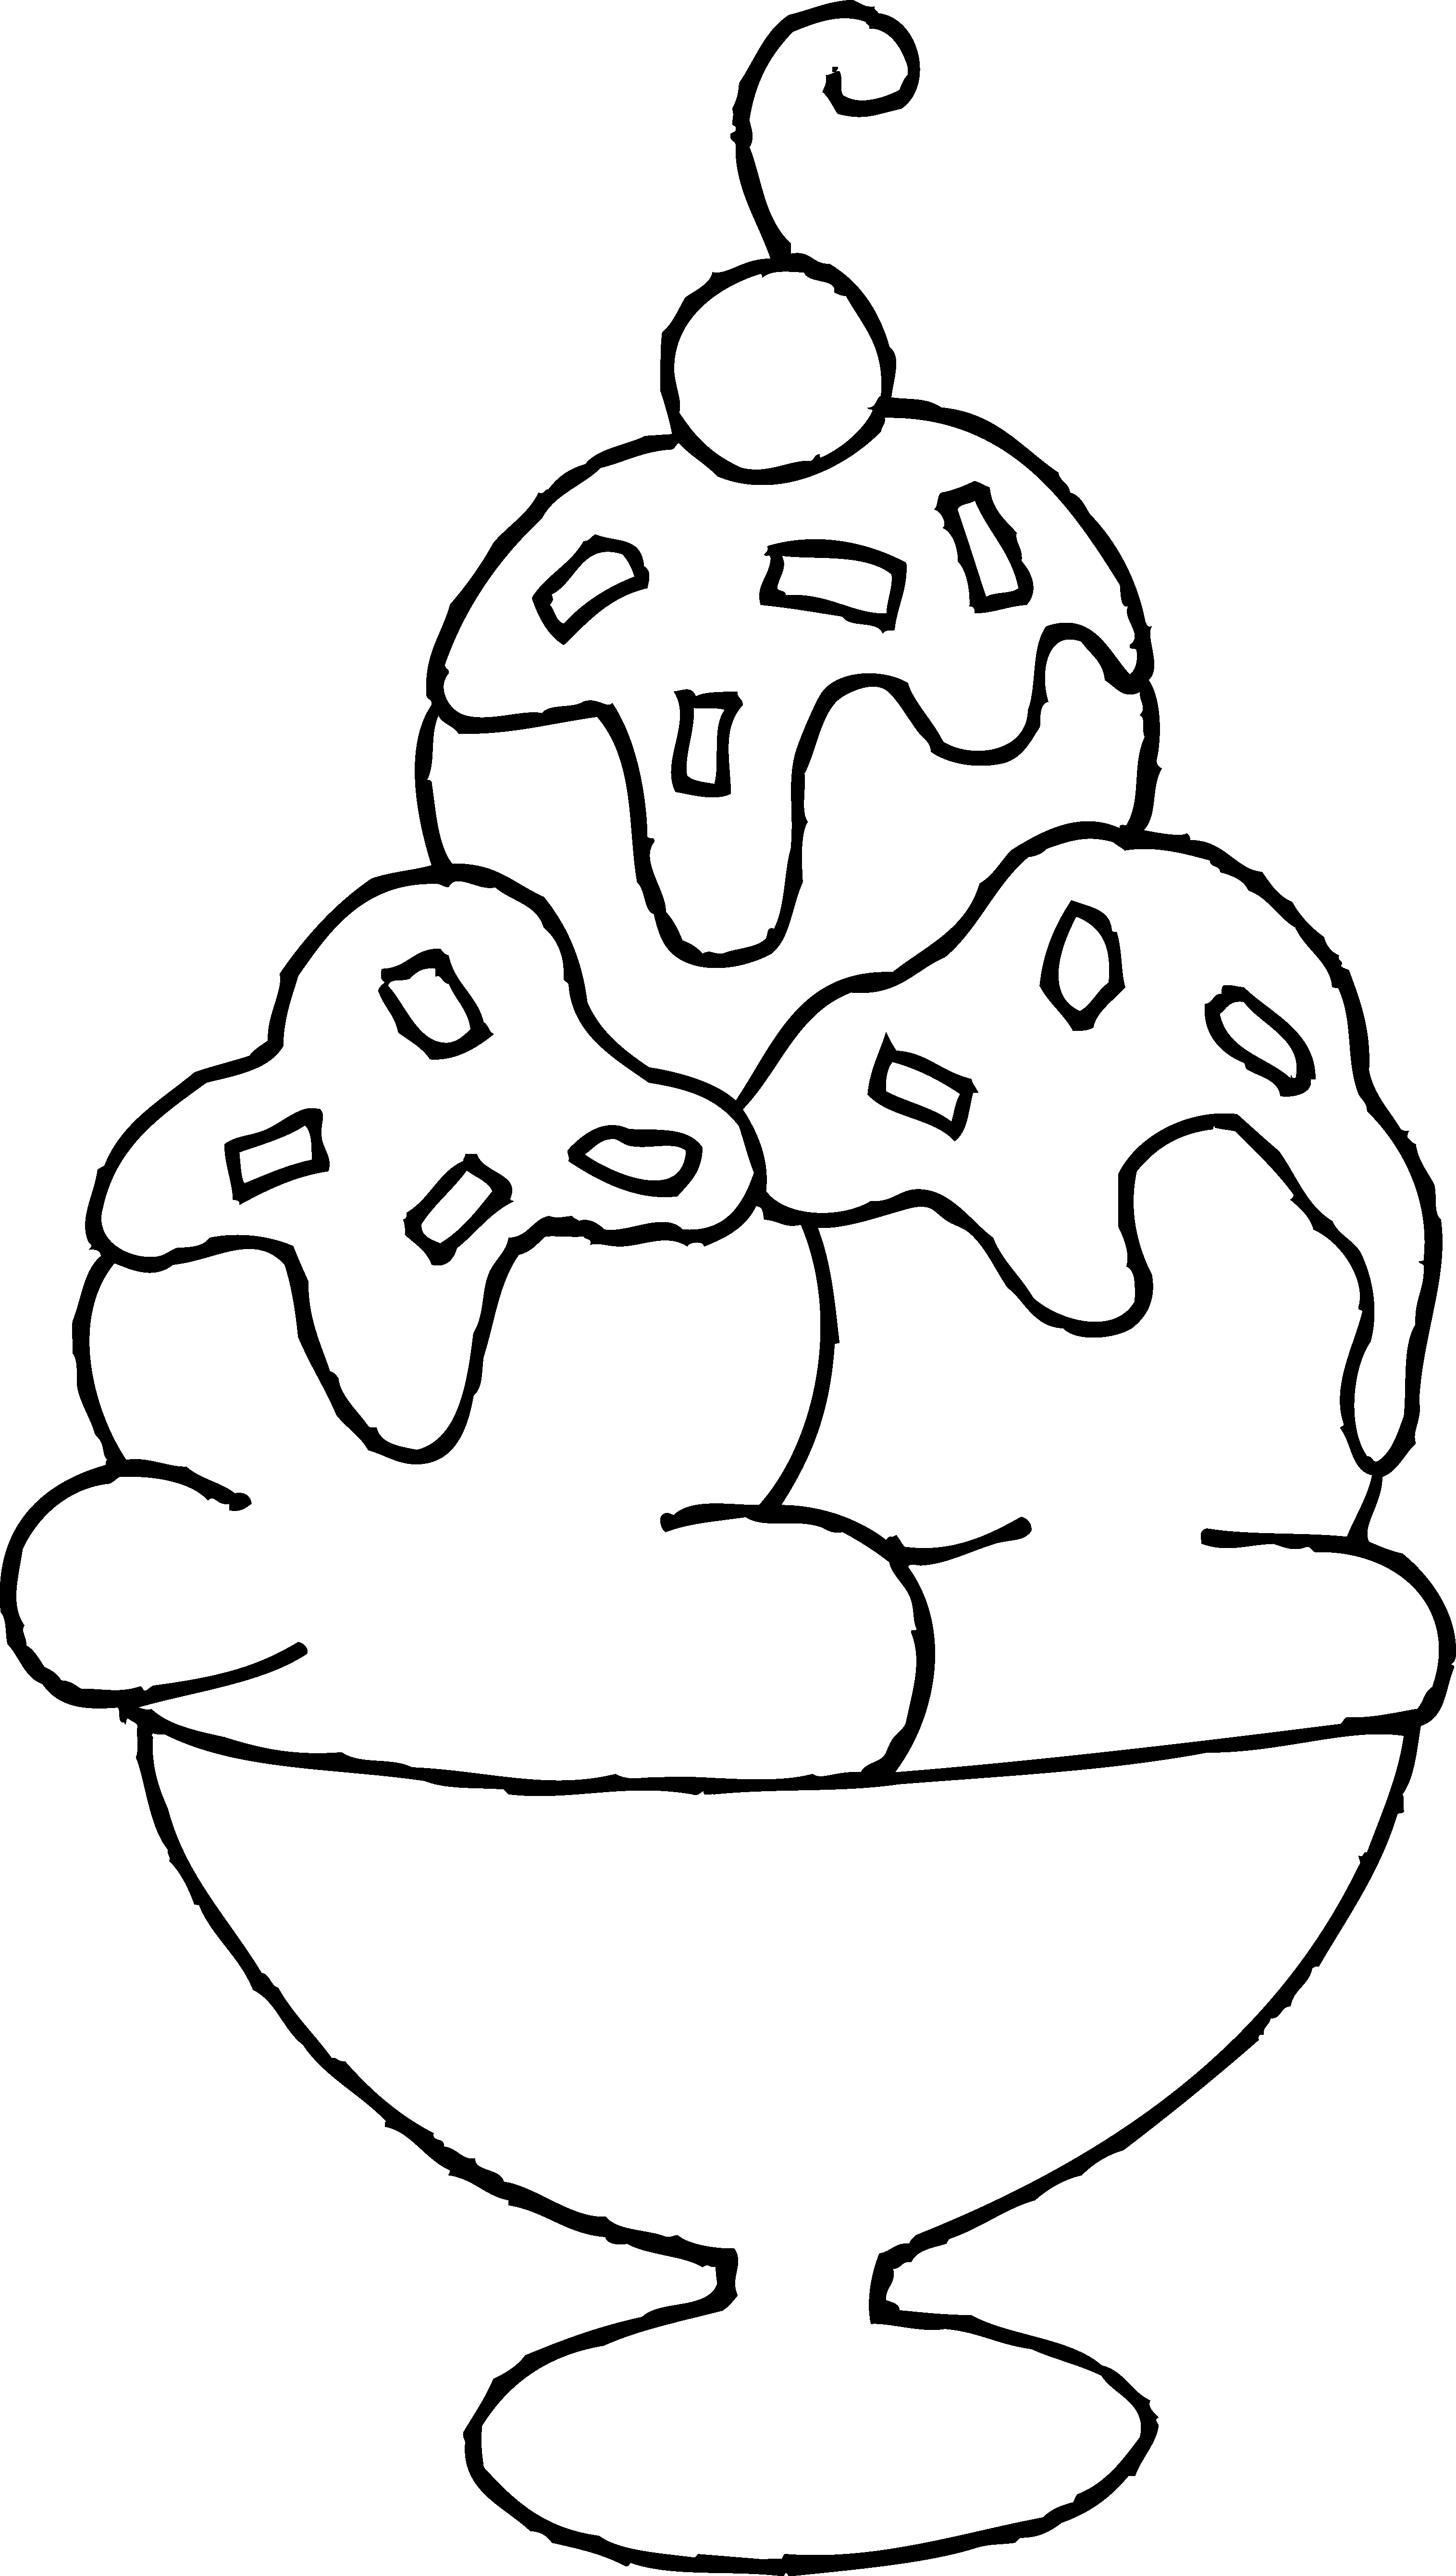 coloring pictures ice cream free easy to print ice cream coloring pages tulamama coloring cream ice pictures